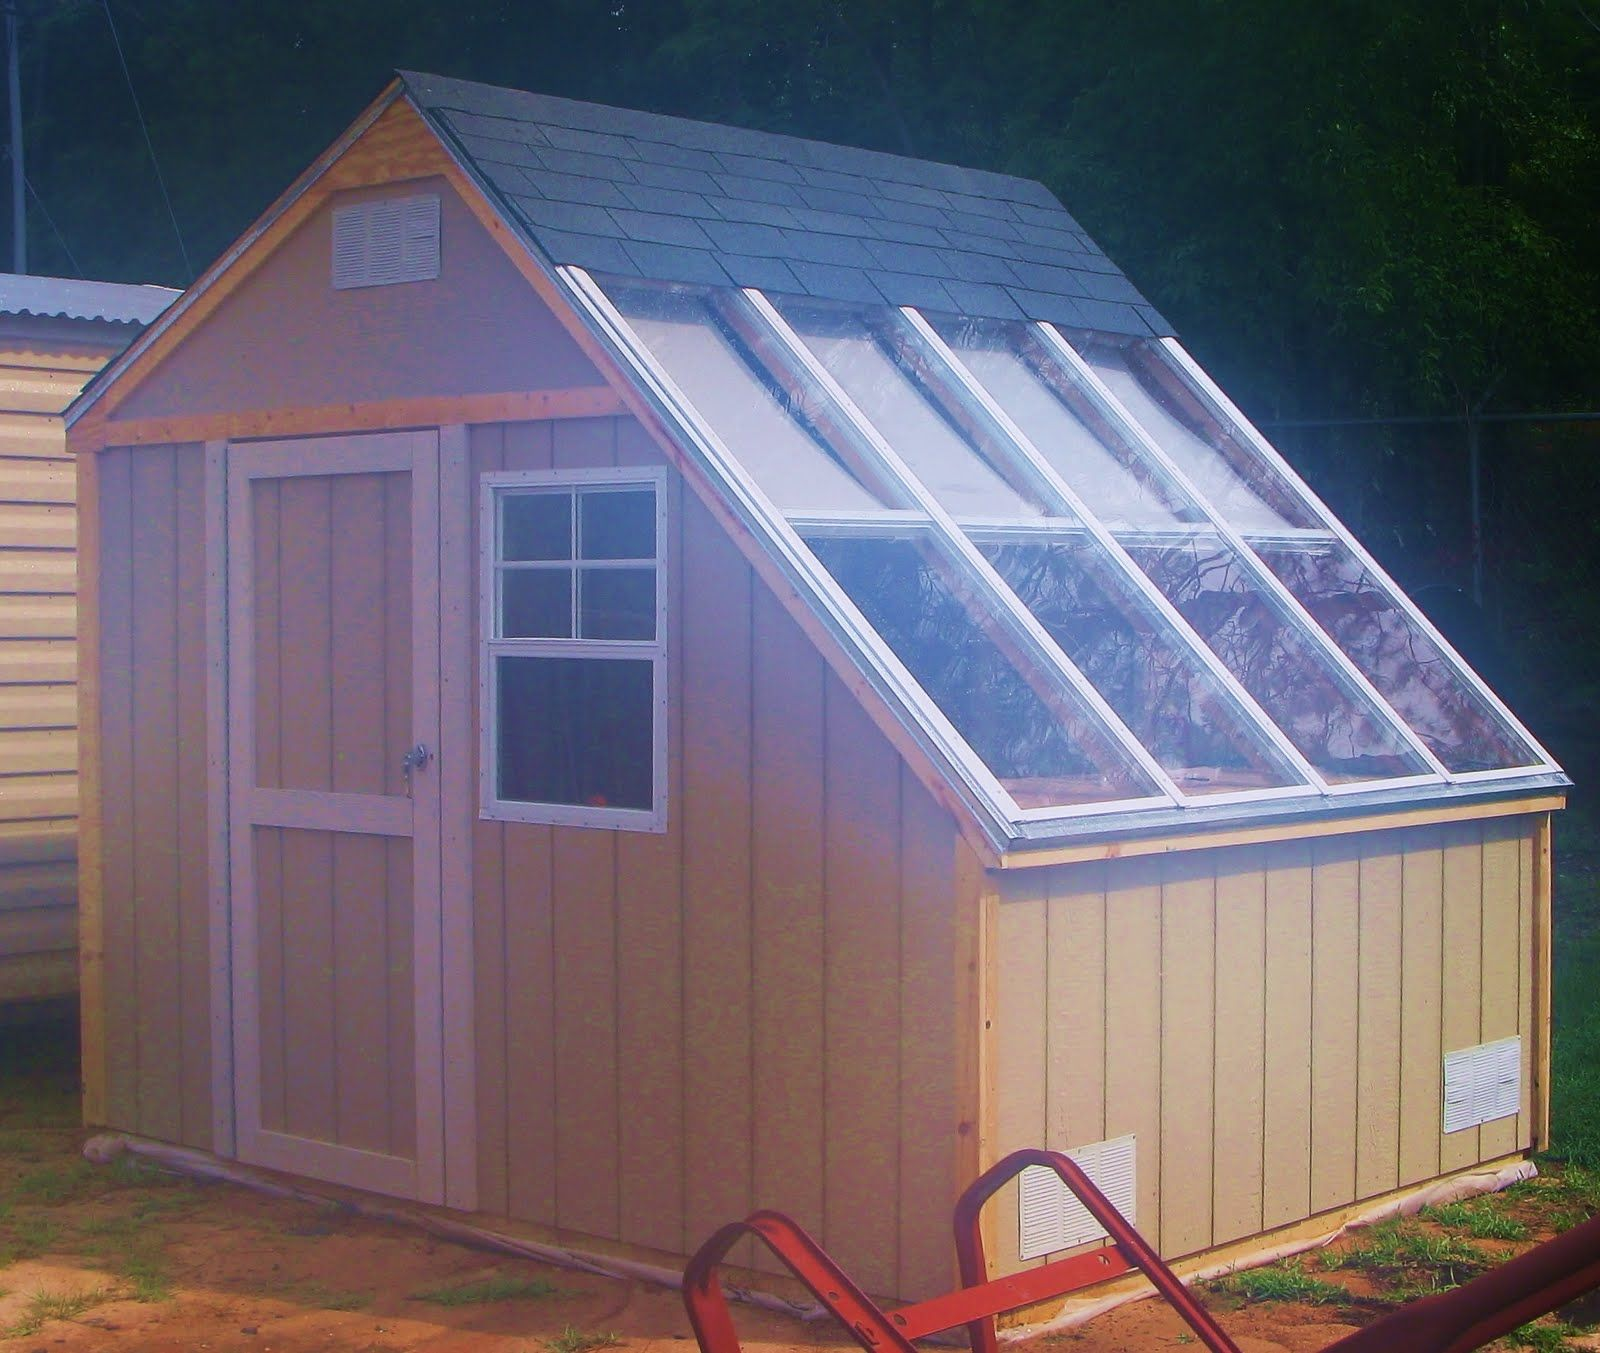 17 Best images about Sheds on Pinterest   Gardens  Tool sheds and Storage  sheds. 17 Best images about Sheds on Pinterest   Gardens  Tool sheds and